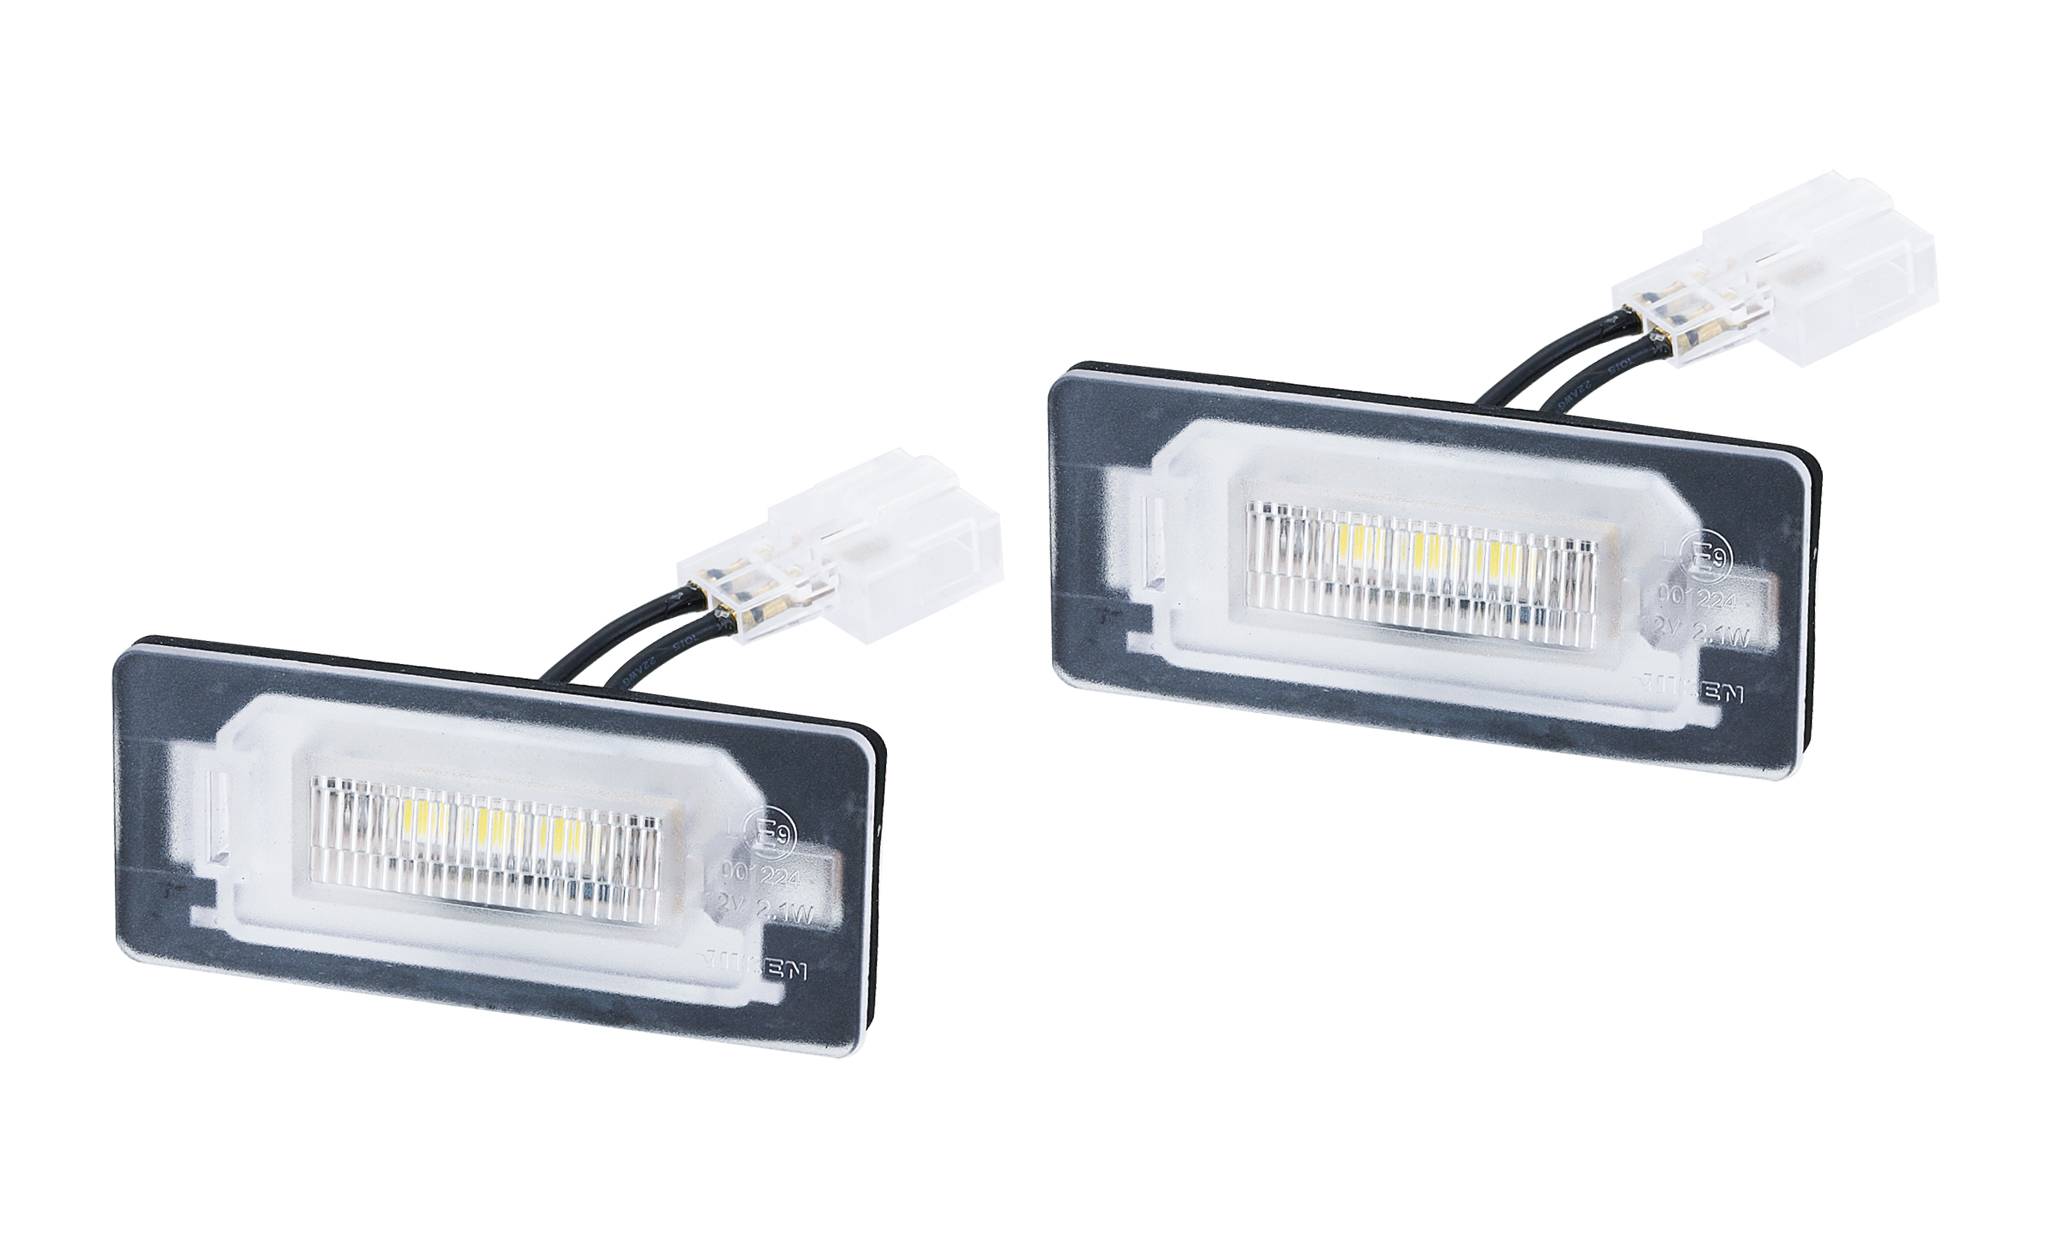 Automobile LED License Lamp for Lighting Series made by NIKEN Vehicle Lighting Co., LTD. 首通股份有限公司 - MatchSupplier.com